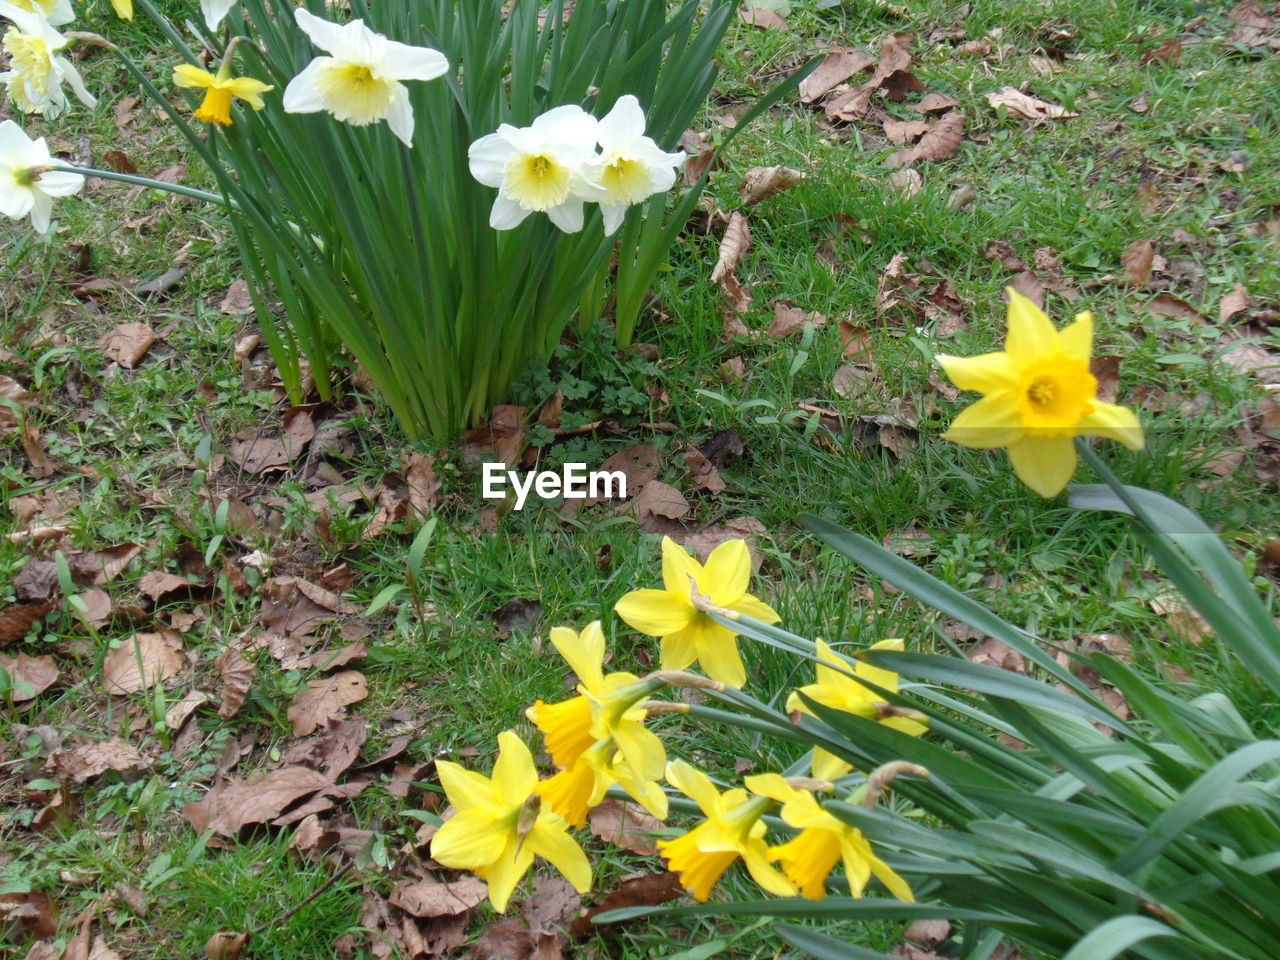 flower, fragility, petal, growth, yellow, freshness, flower head, nature, beauty in nature, blooming, daffodil, plant, outdoors, wildflower, field, high angle view, springtime, day, no people, green color, leaf, uncultivated, grass, close-up, crocus, black-eyed susan